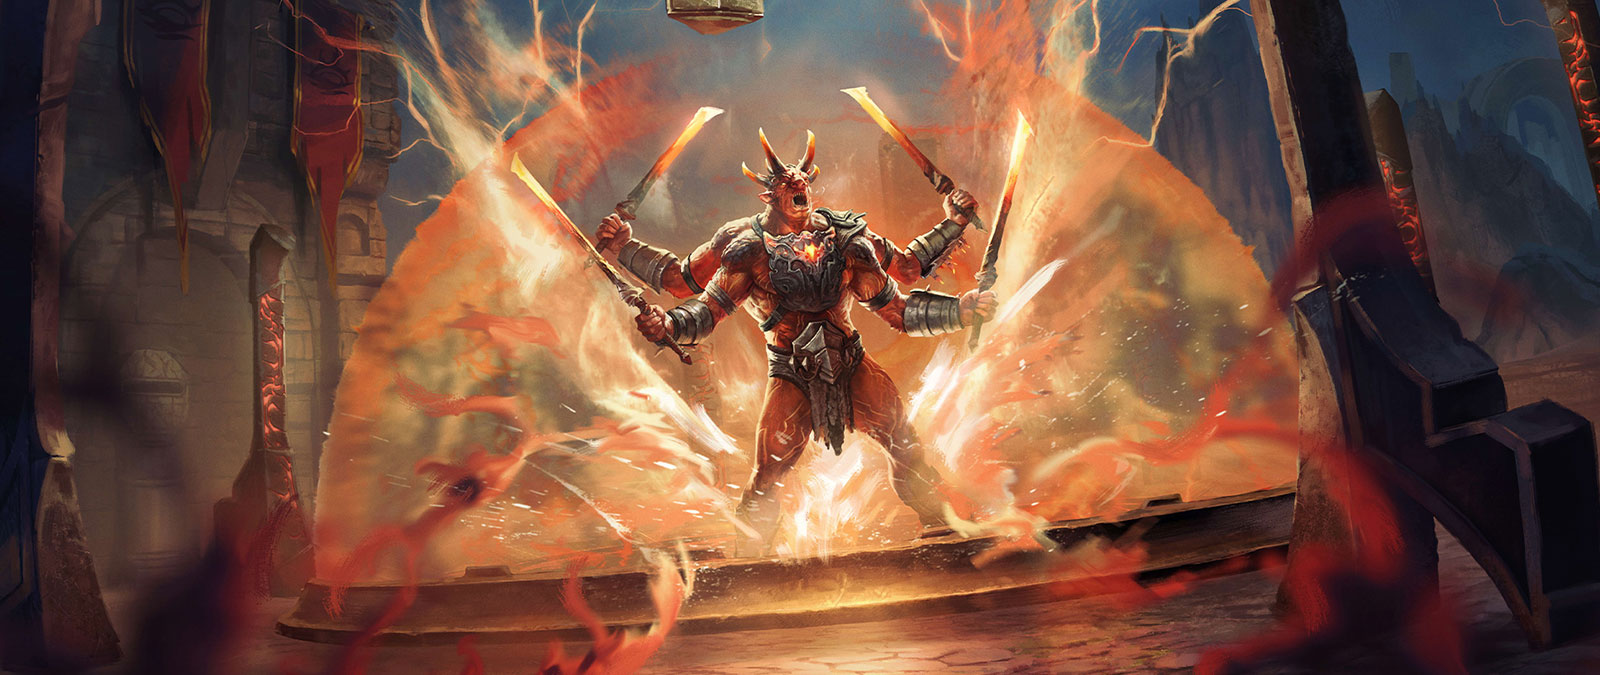 A red horned creature with four arms and four glowing blades surrounded by a magical aura